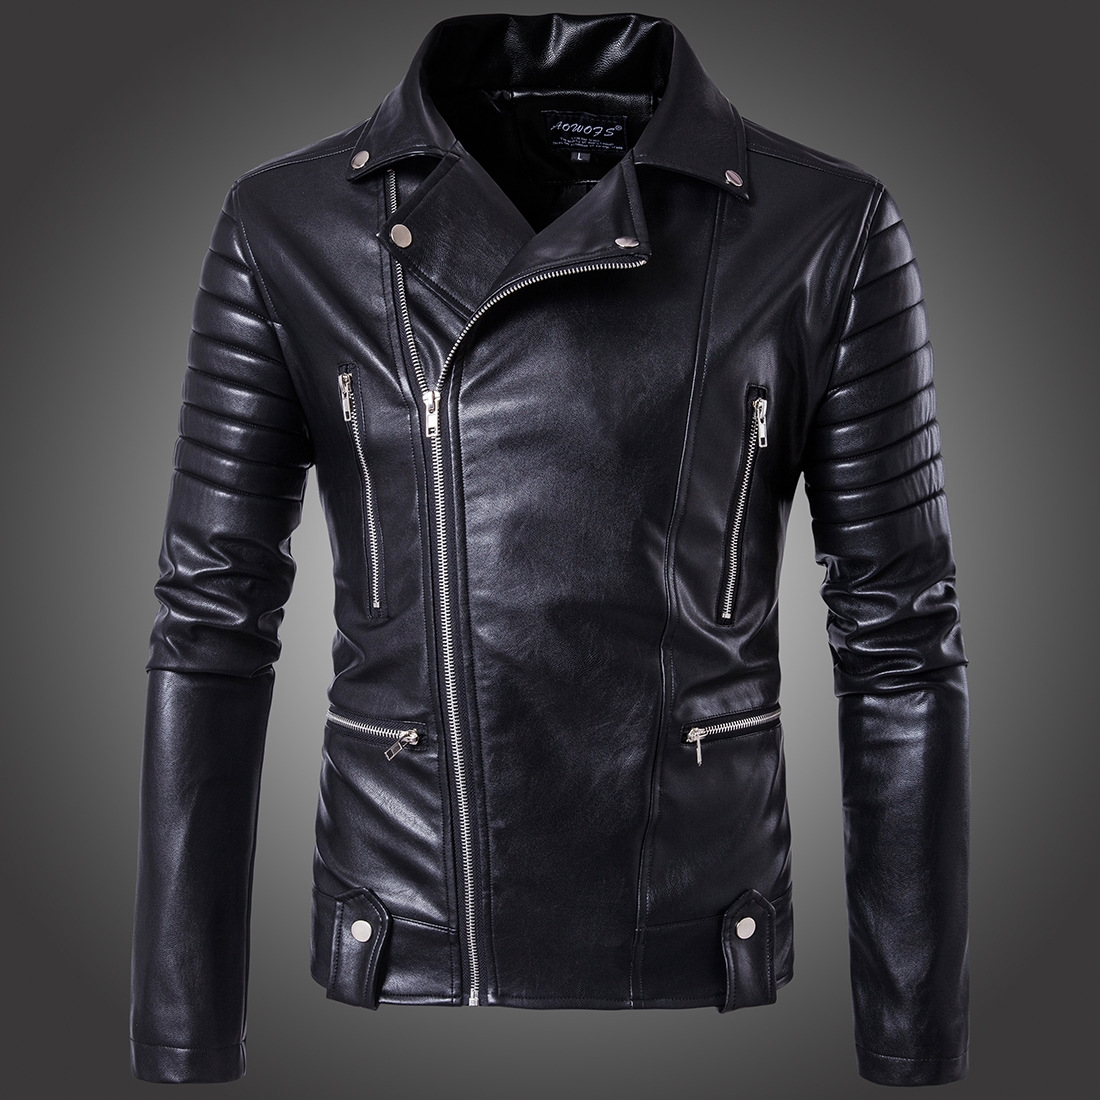 rebelsmarket_mens_punk_multi_zipper_biker_jacket_black_jackets_5.jpg